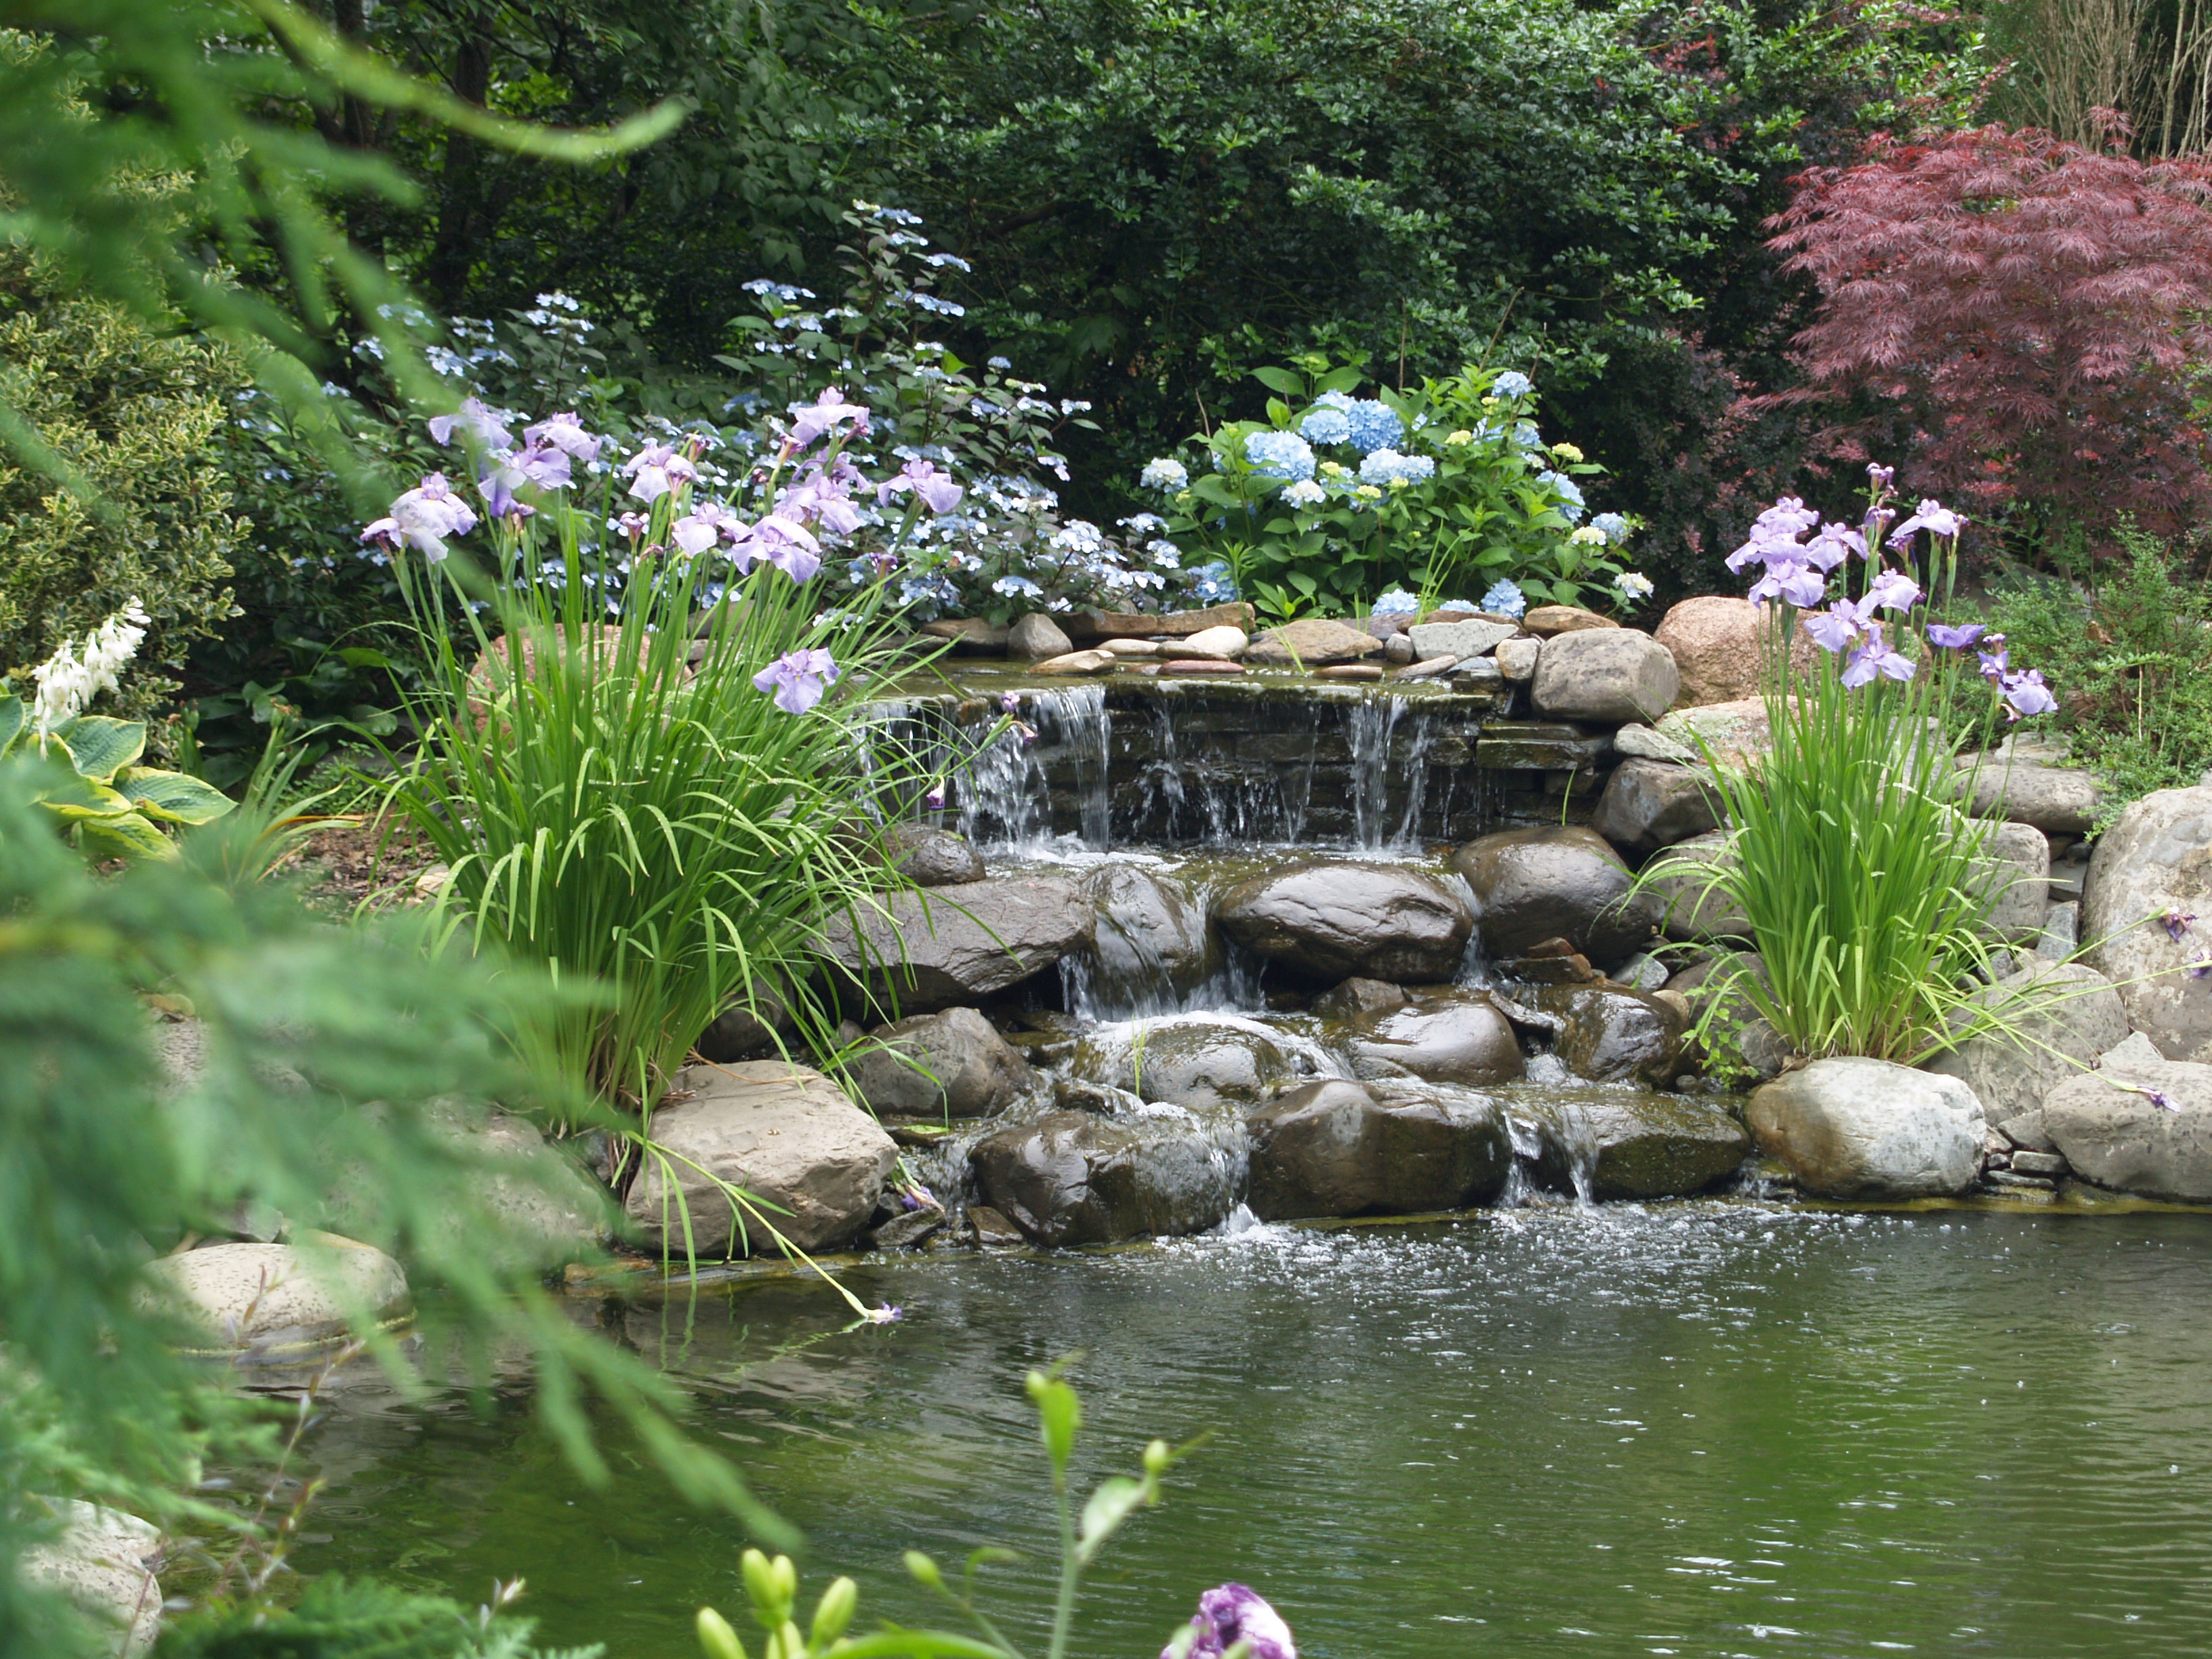 Garden ponds are a delight ramblin 39 through dave 39 s garden for Backyard pond plants and fish